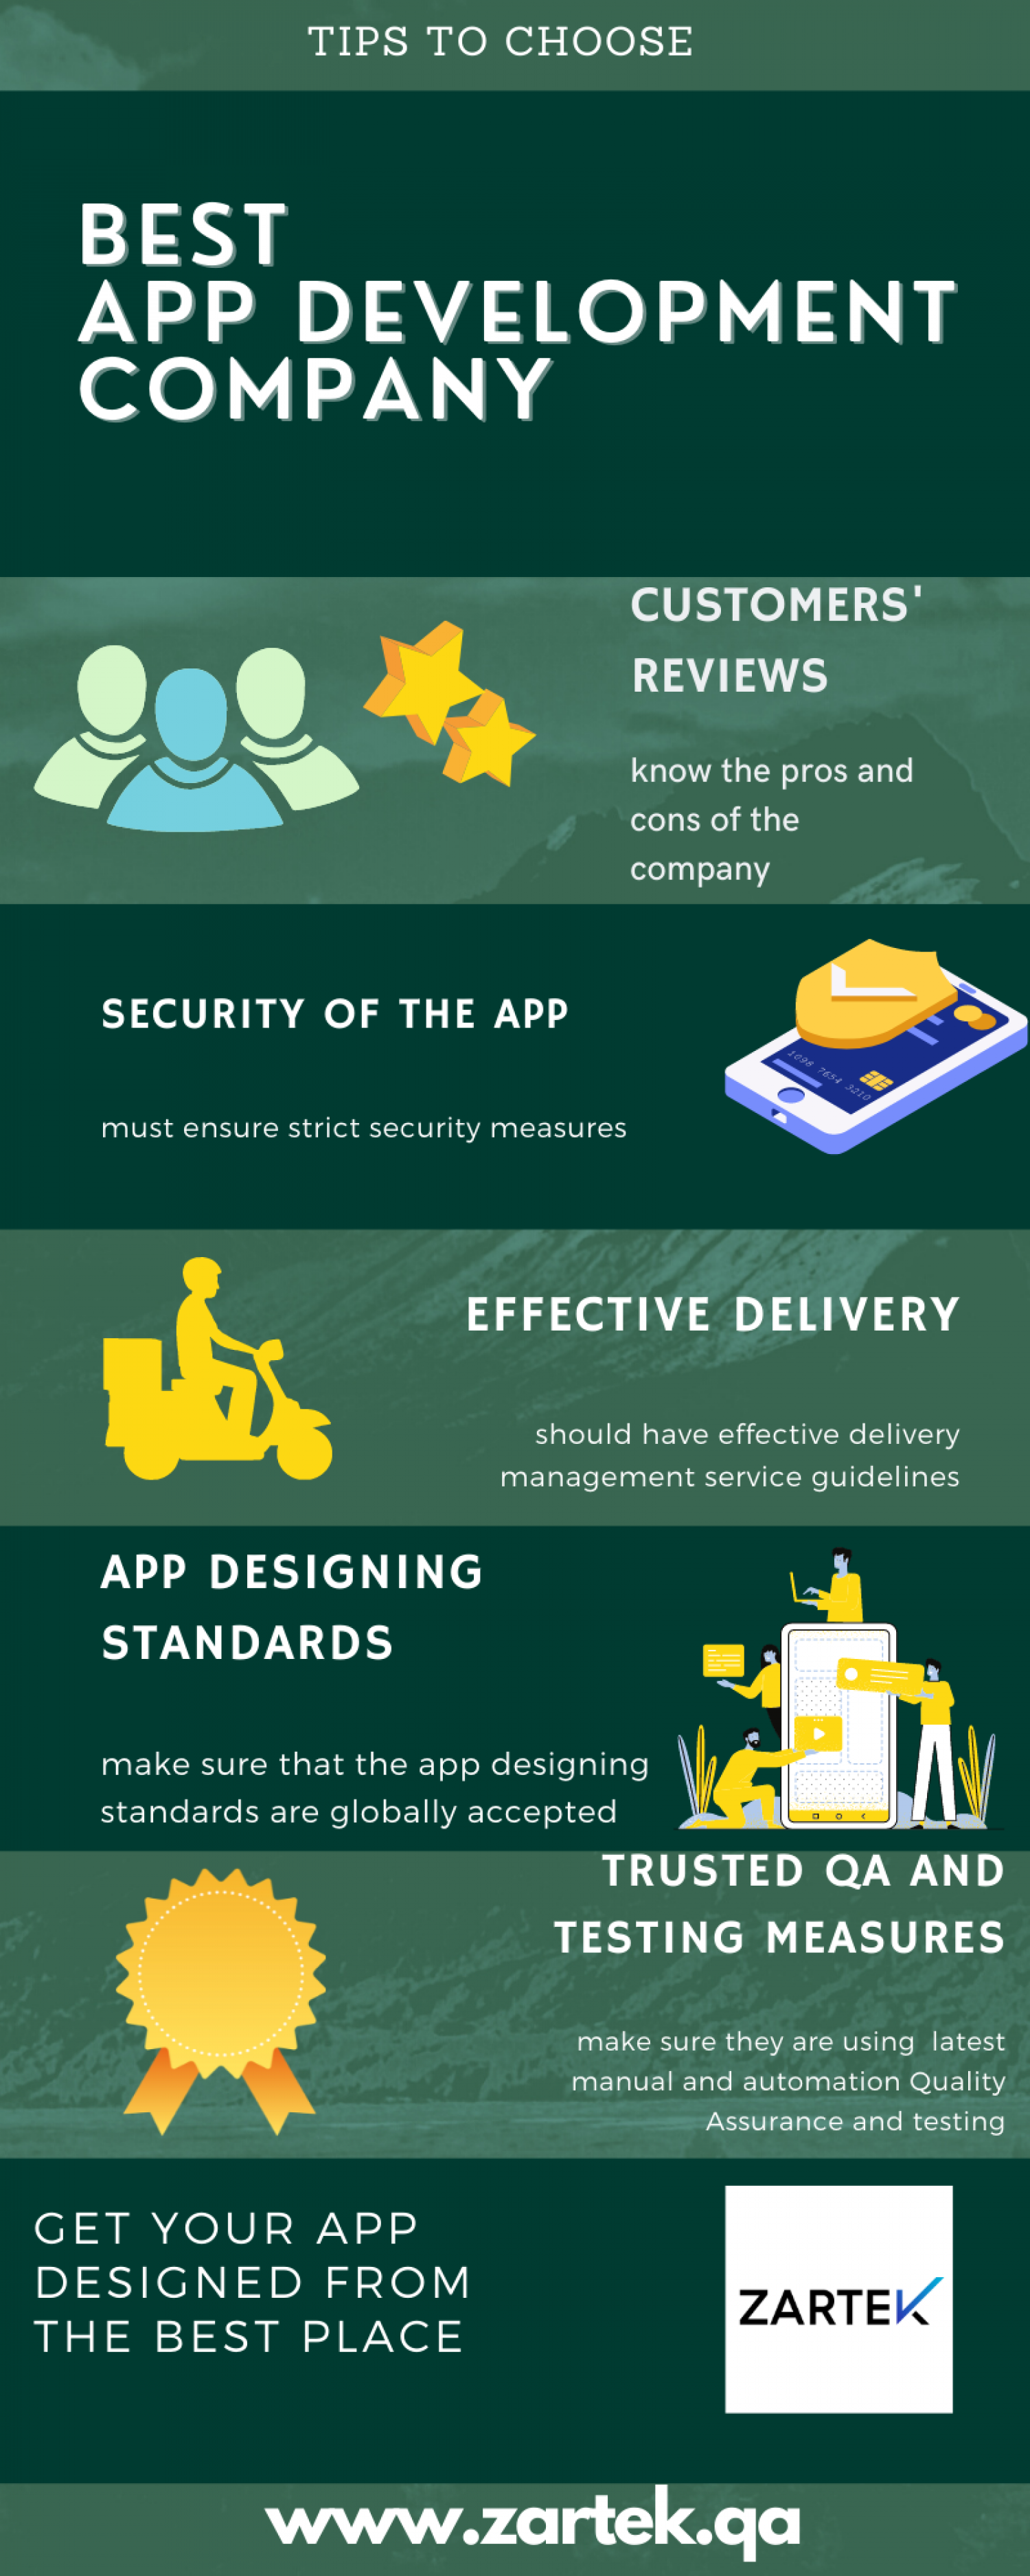 Tips to choose best mobile app development company  Infographic